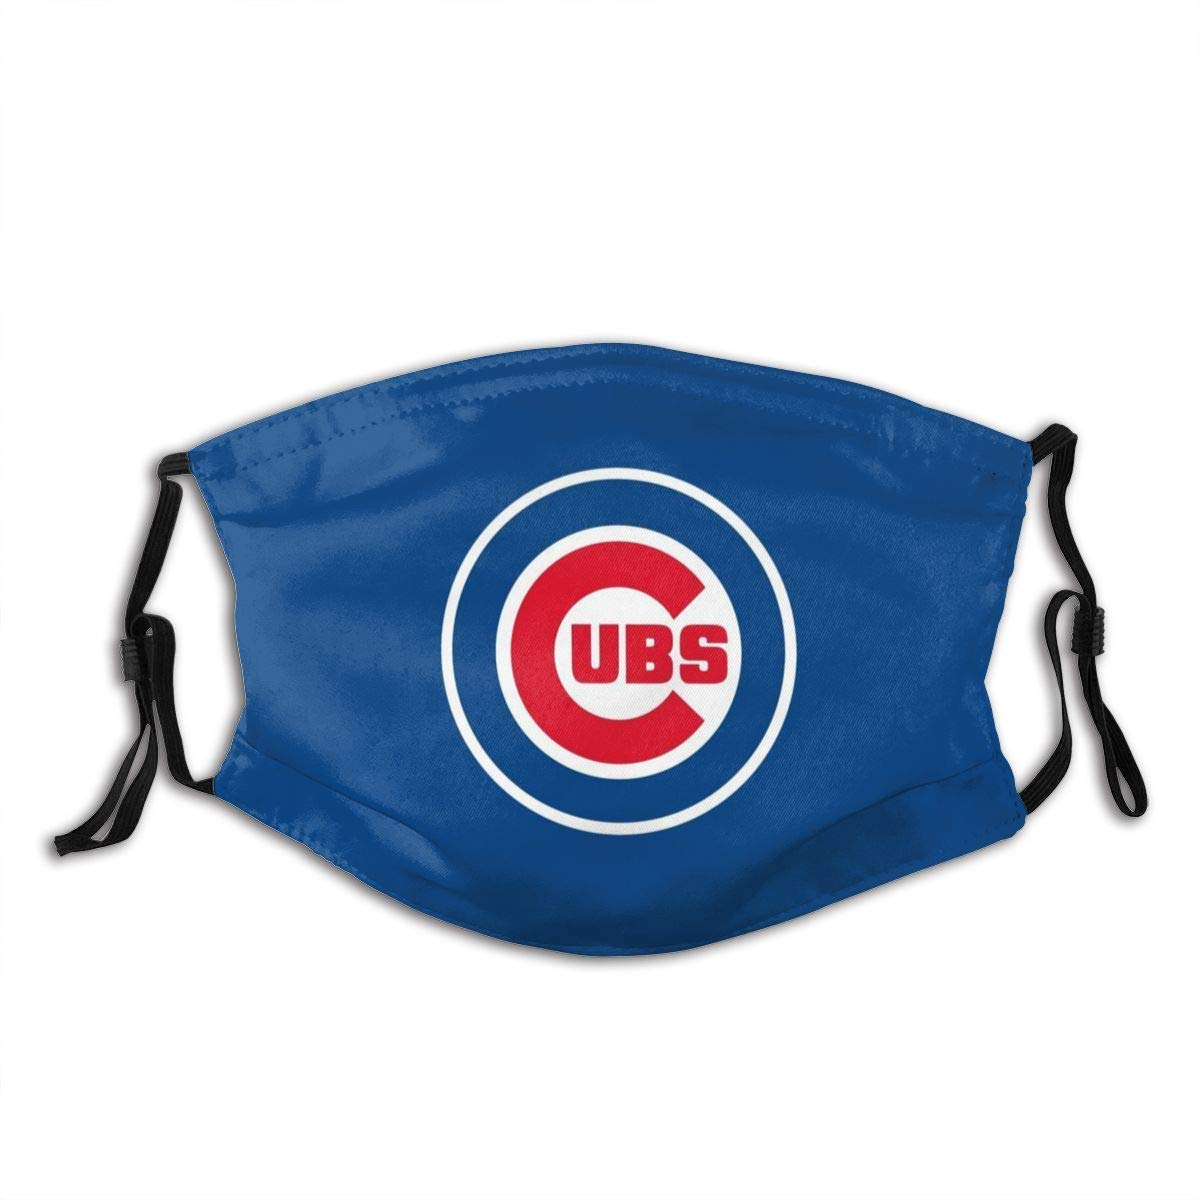 Face Cover Soft Mouth Cover Adjustable for Chicago Baseball Fans Unisex Sports Balaclavas Scarf